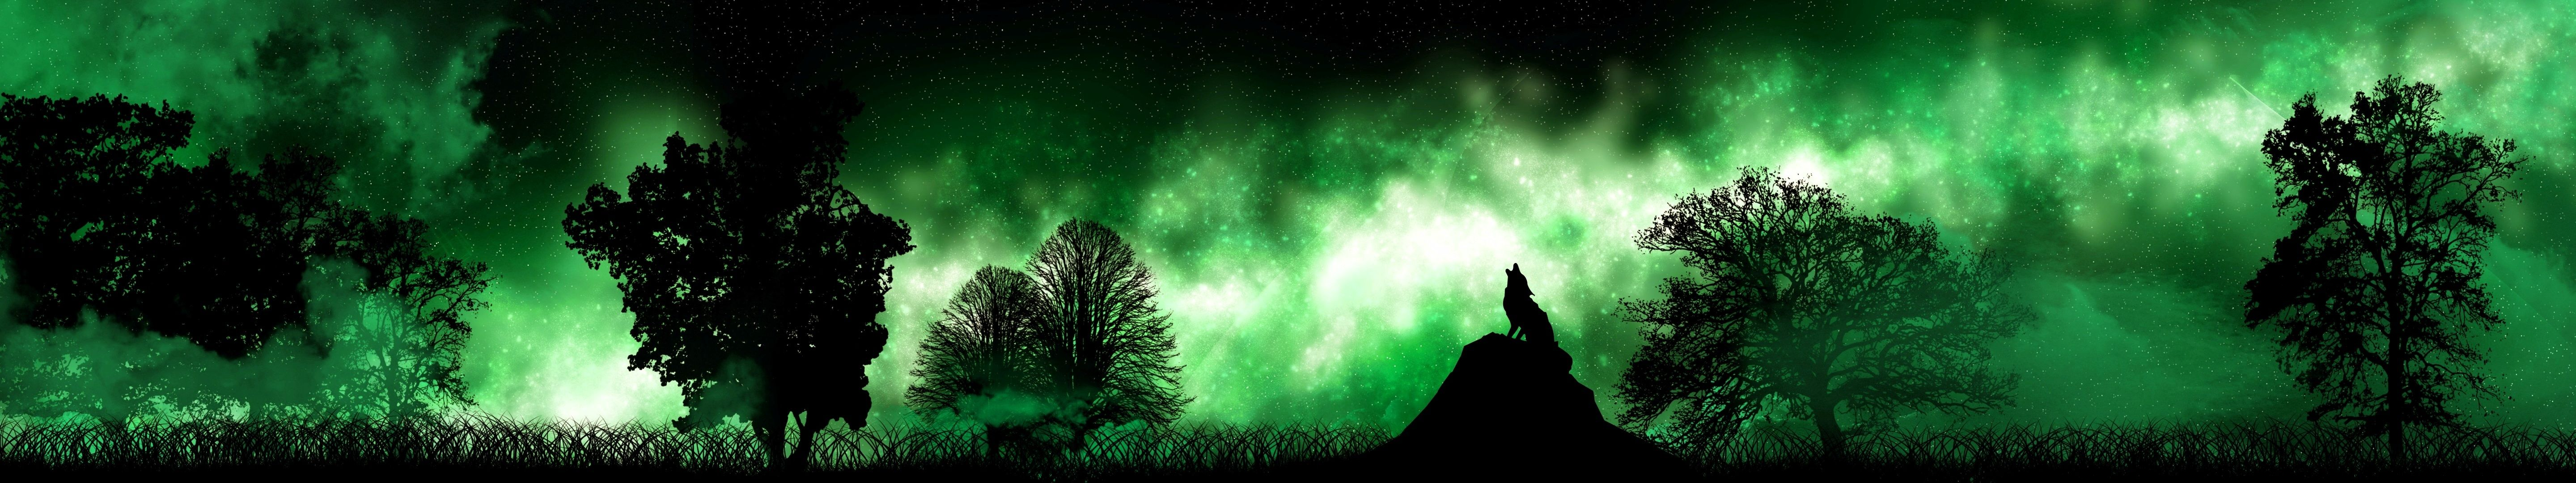 1920x1200 Free Howling Wolf Wallpaper For Android Long Wallpapers